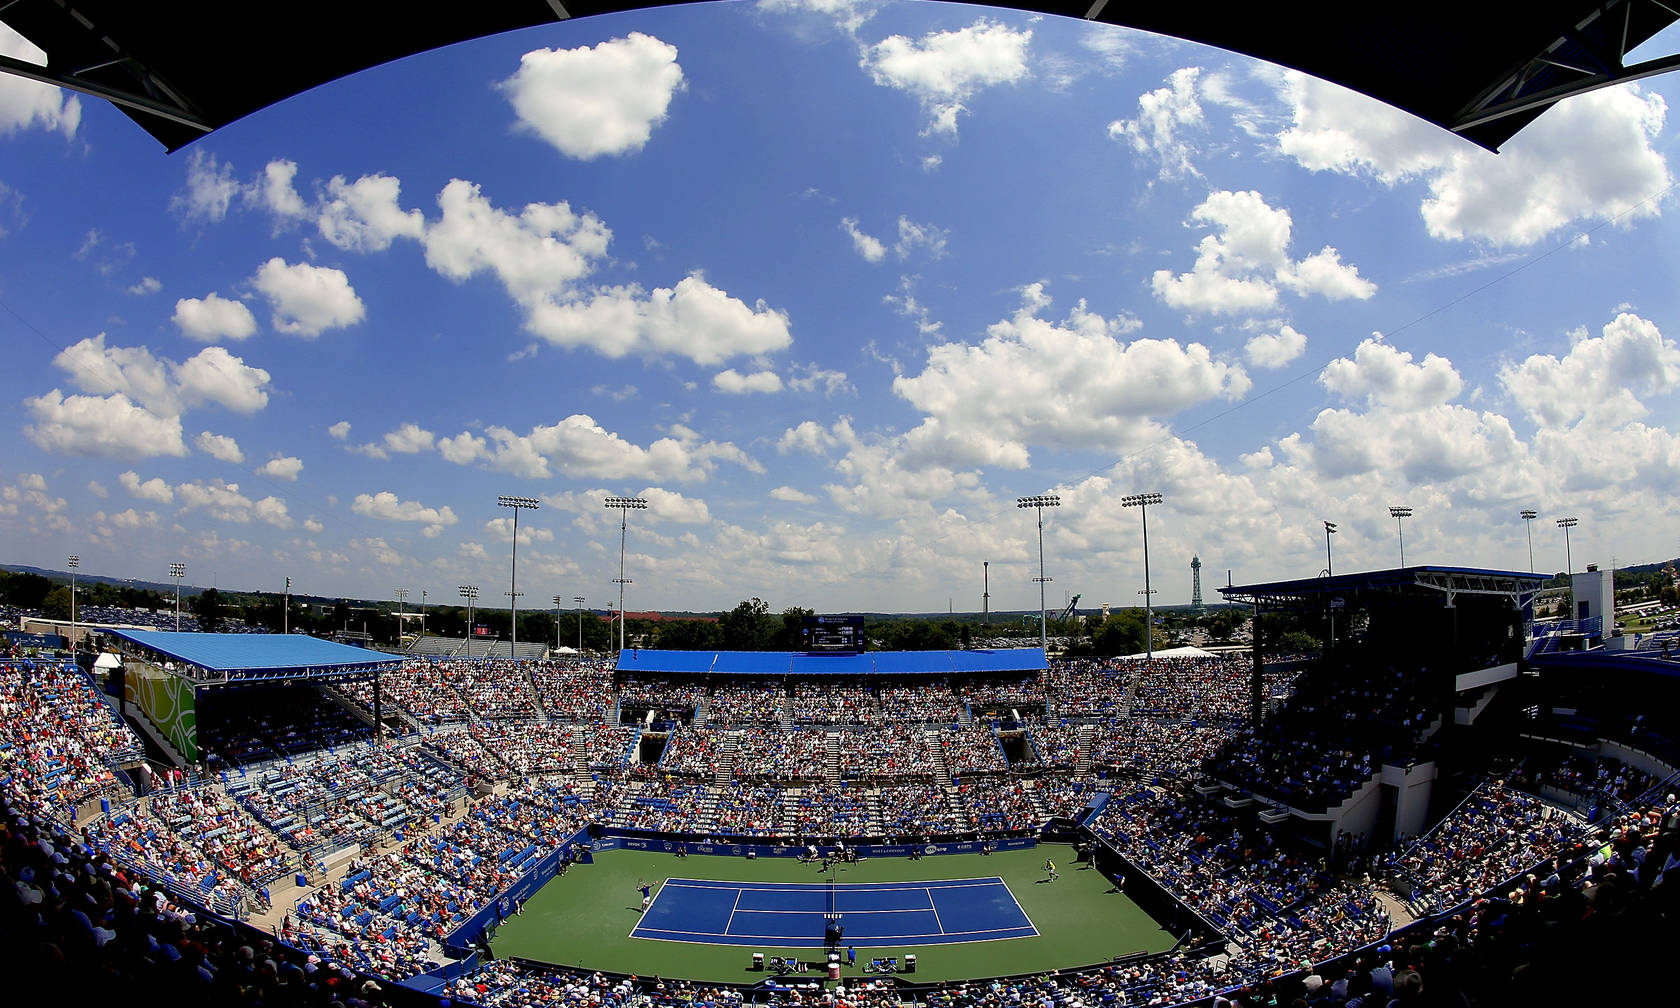 Western & Southern Open - Schedule - Andy Murray Official Site